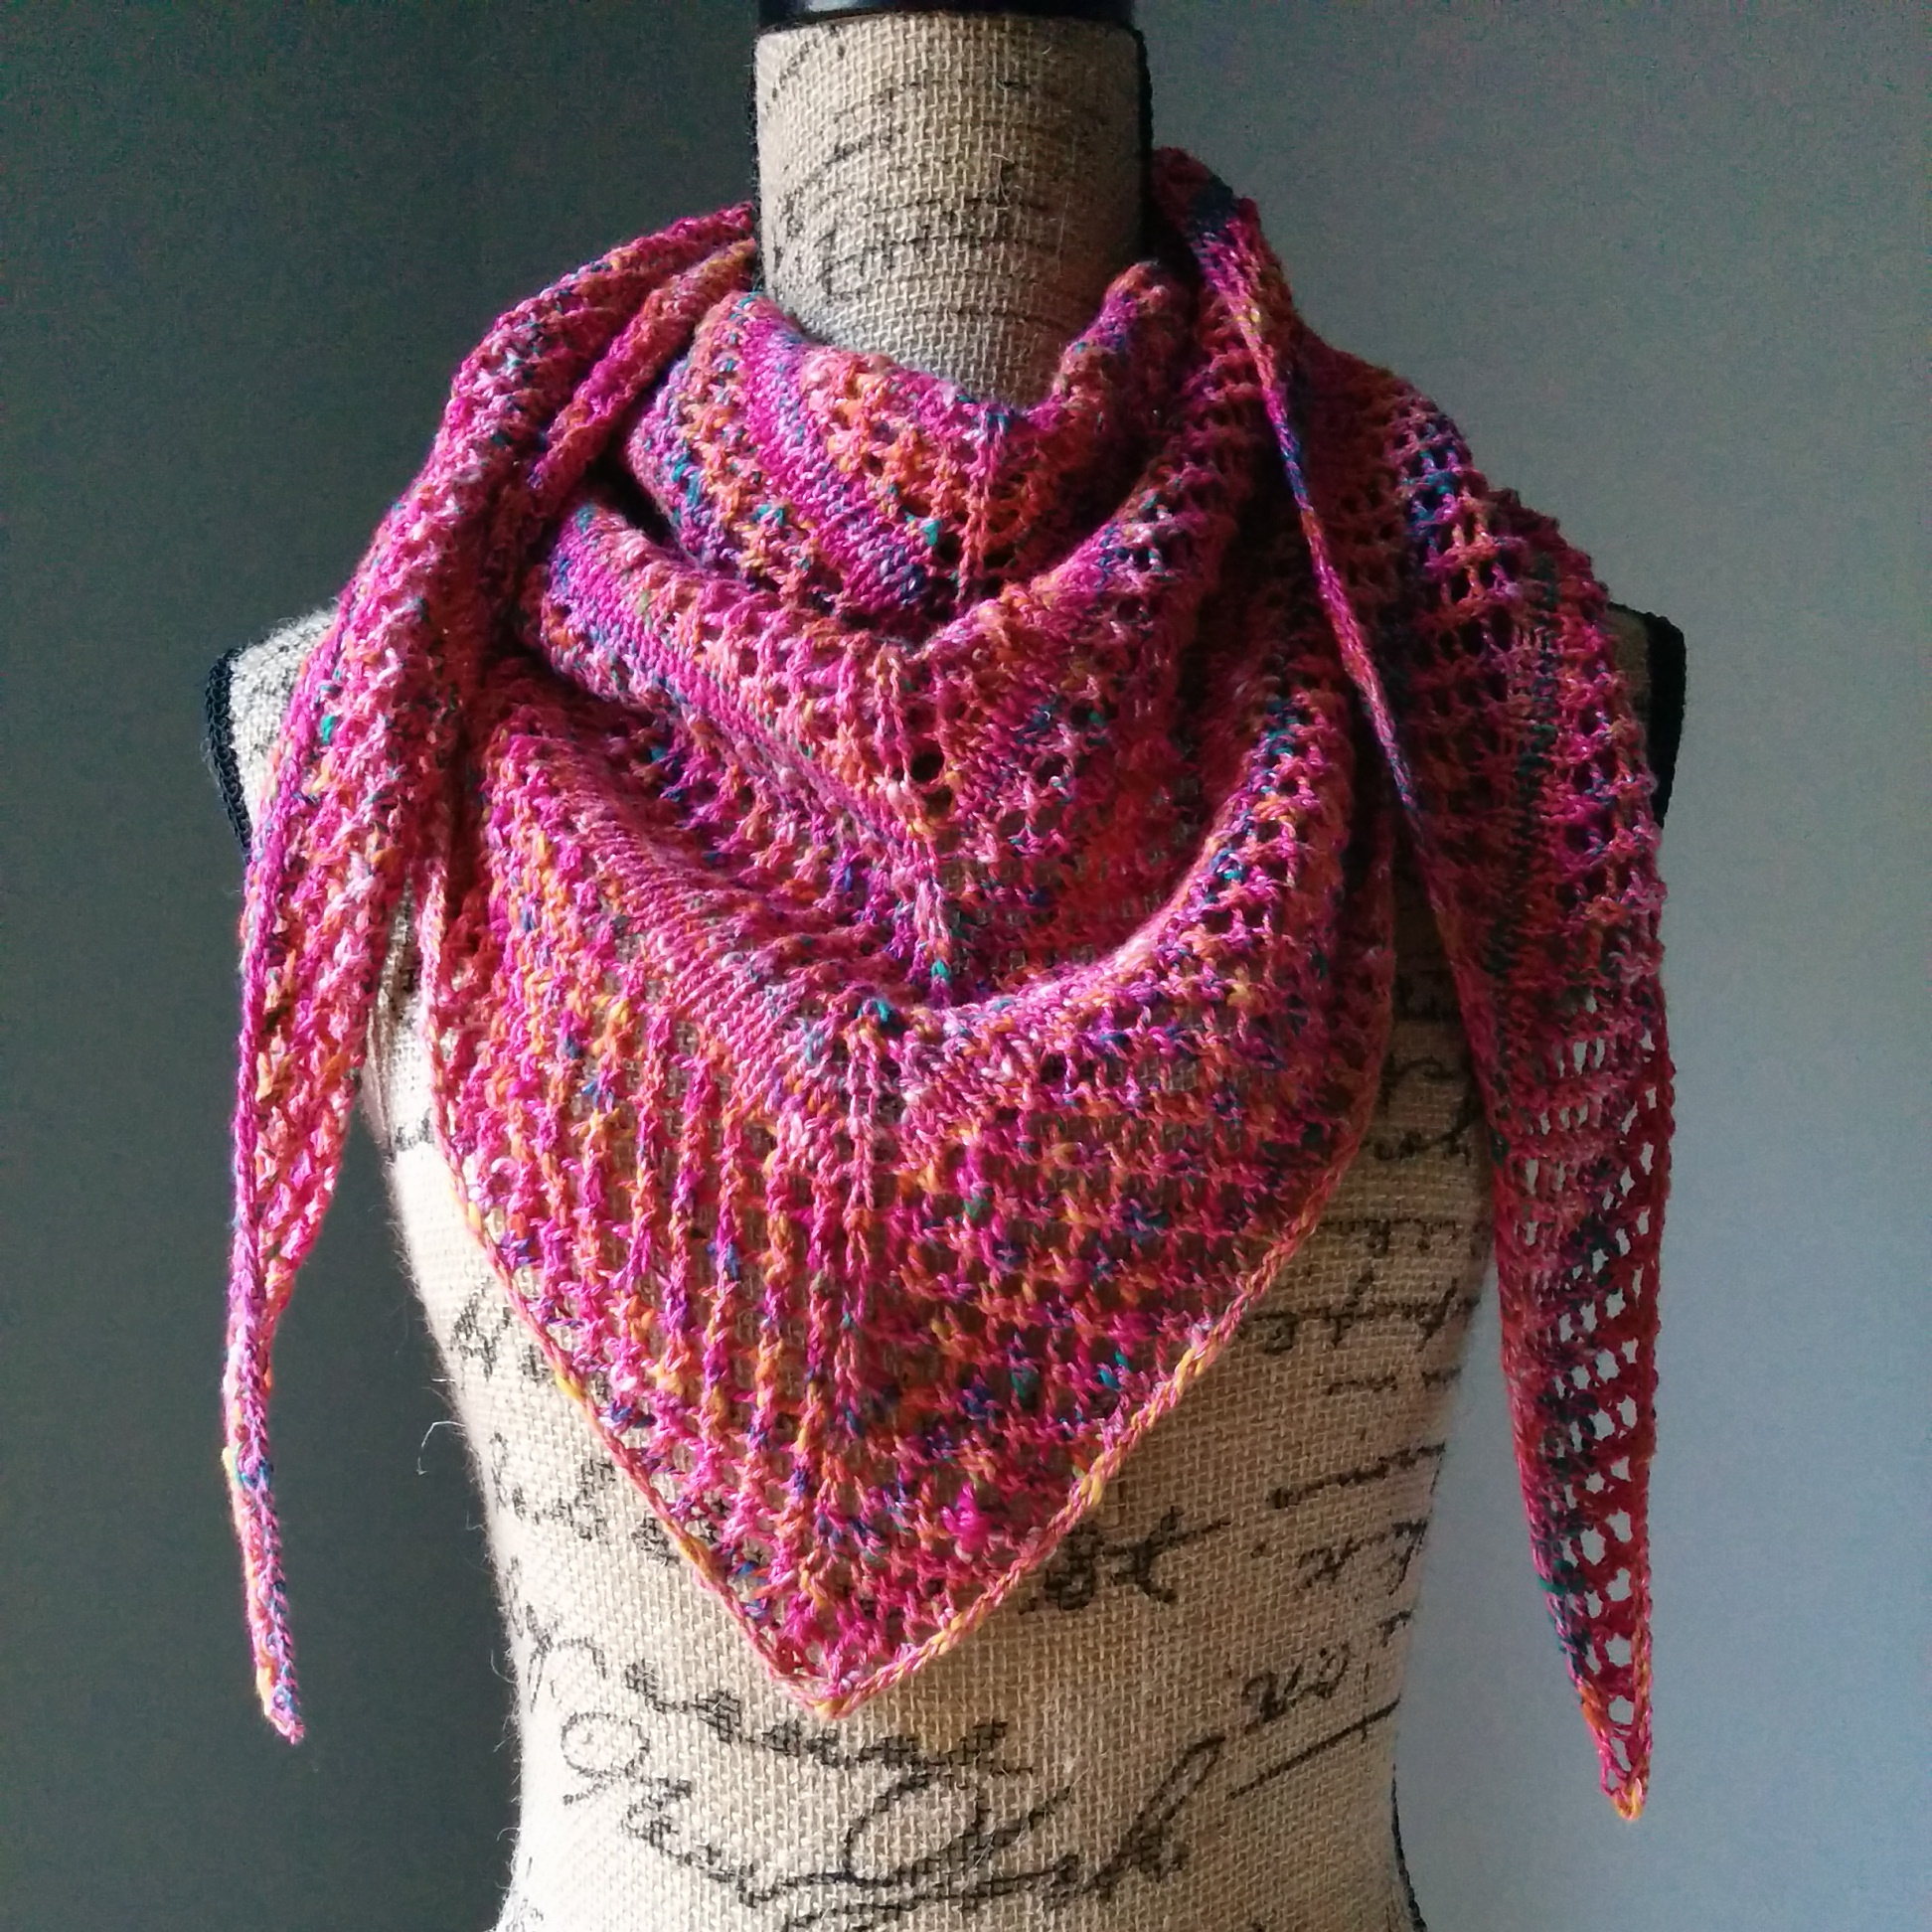 Shawl Knitting Pattern : Casual Lace Knit Shawl - Purl Avenue